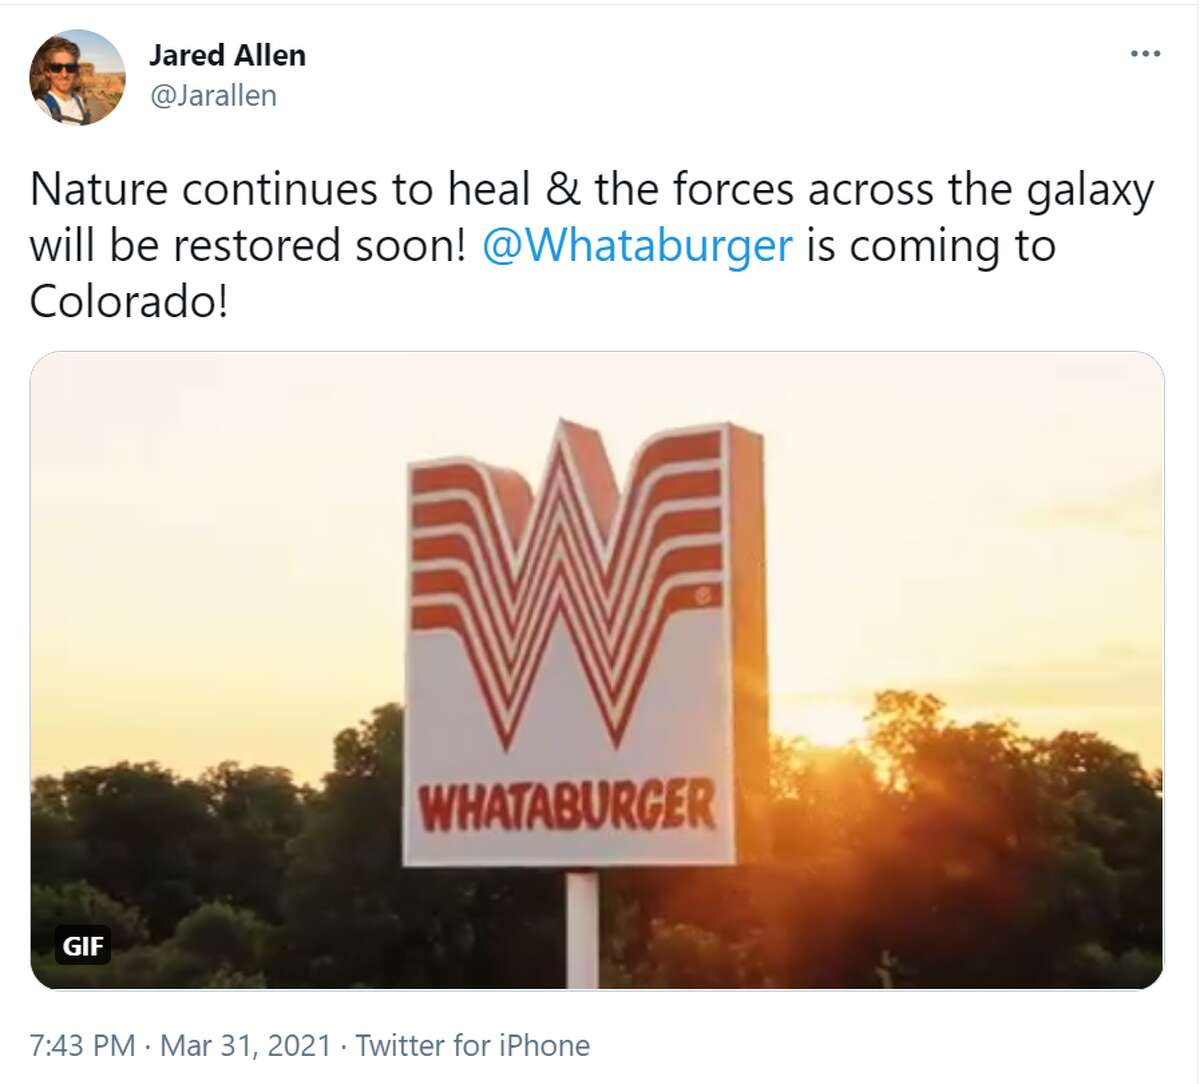 @Jarallen: Nature continues to heal & the forces across the galaxy will be restored soon!  @Whataburger is coming to Colorado!